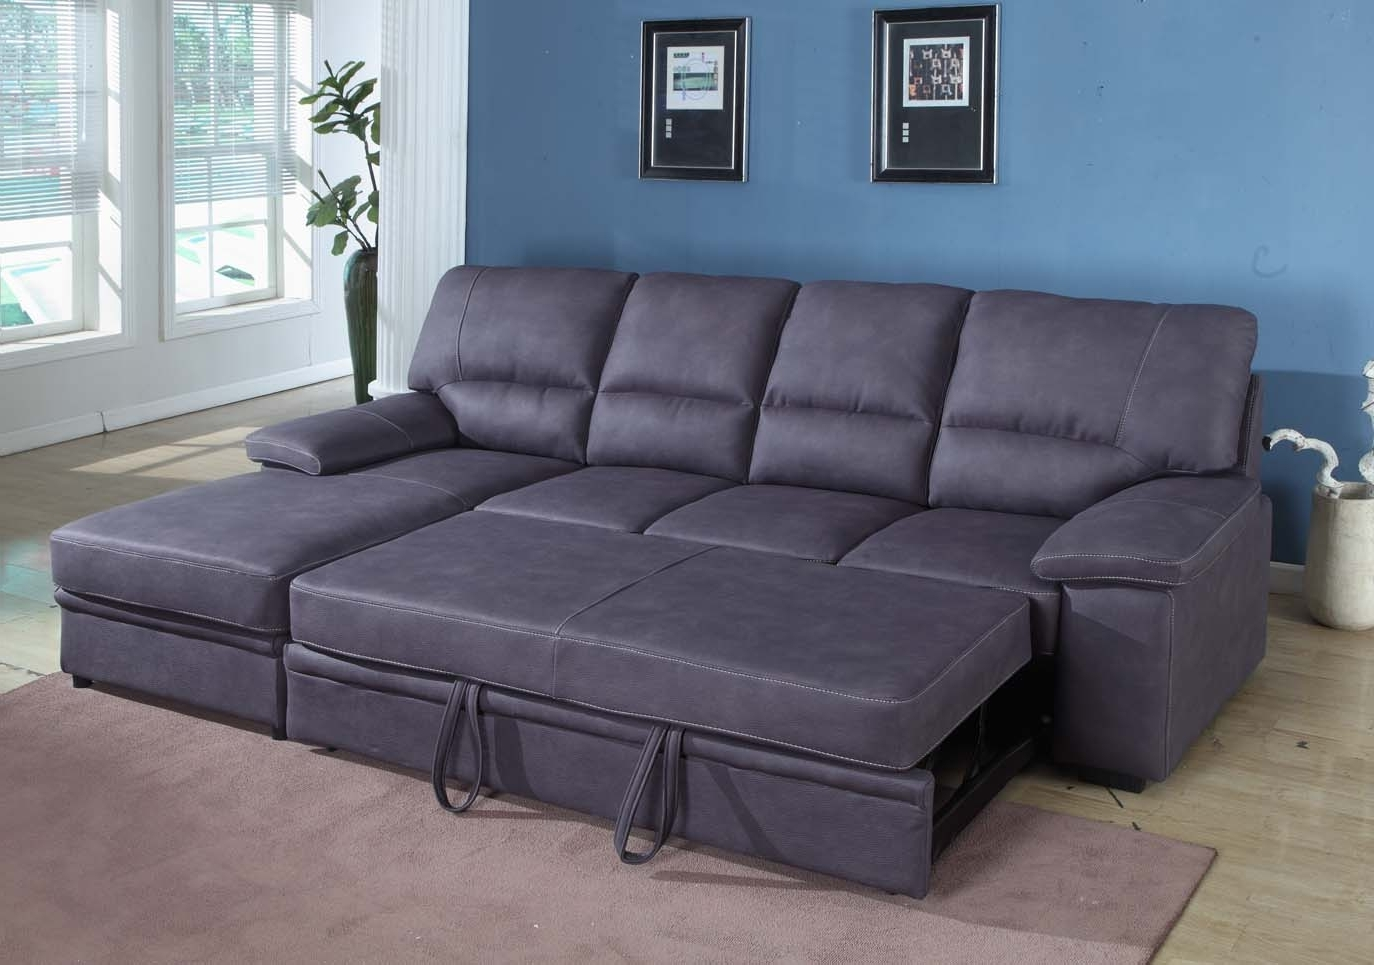 Grey Sleeper Sectional Sofa (View 9 of 20)